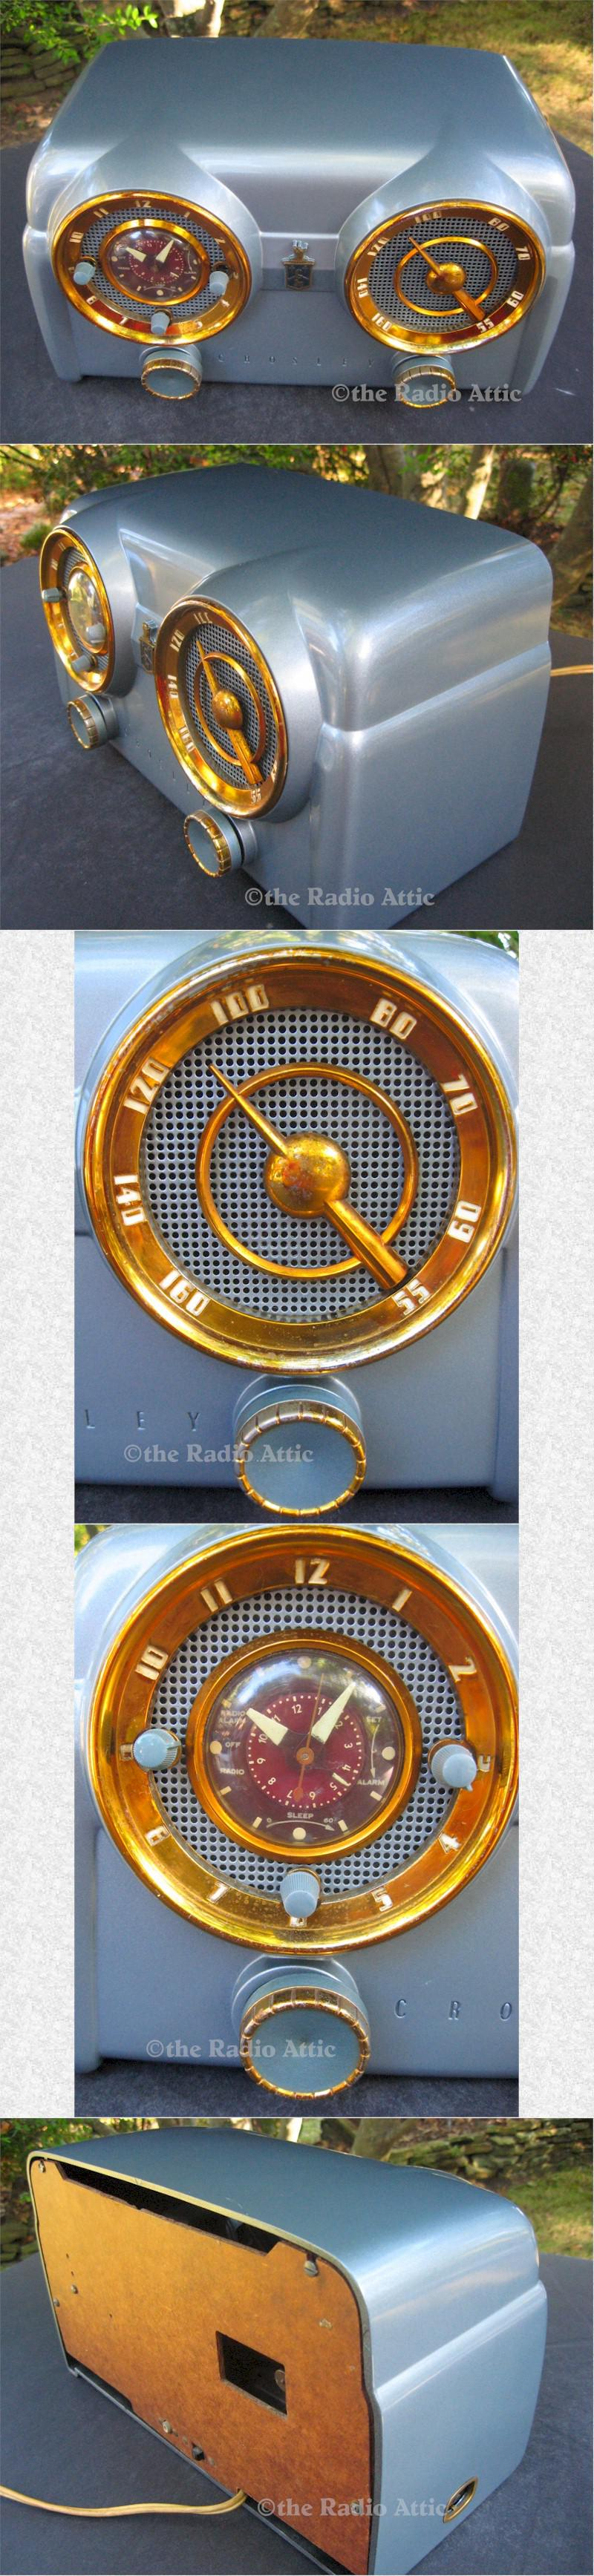 Crosley D-25-BE Clock Radio (1953)